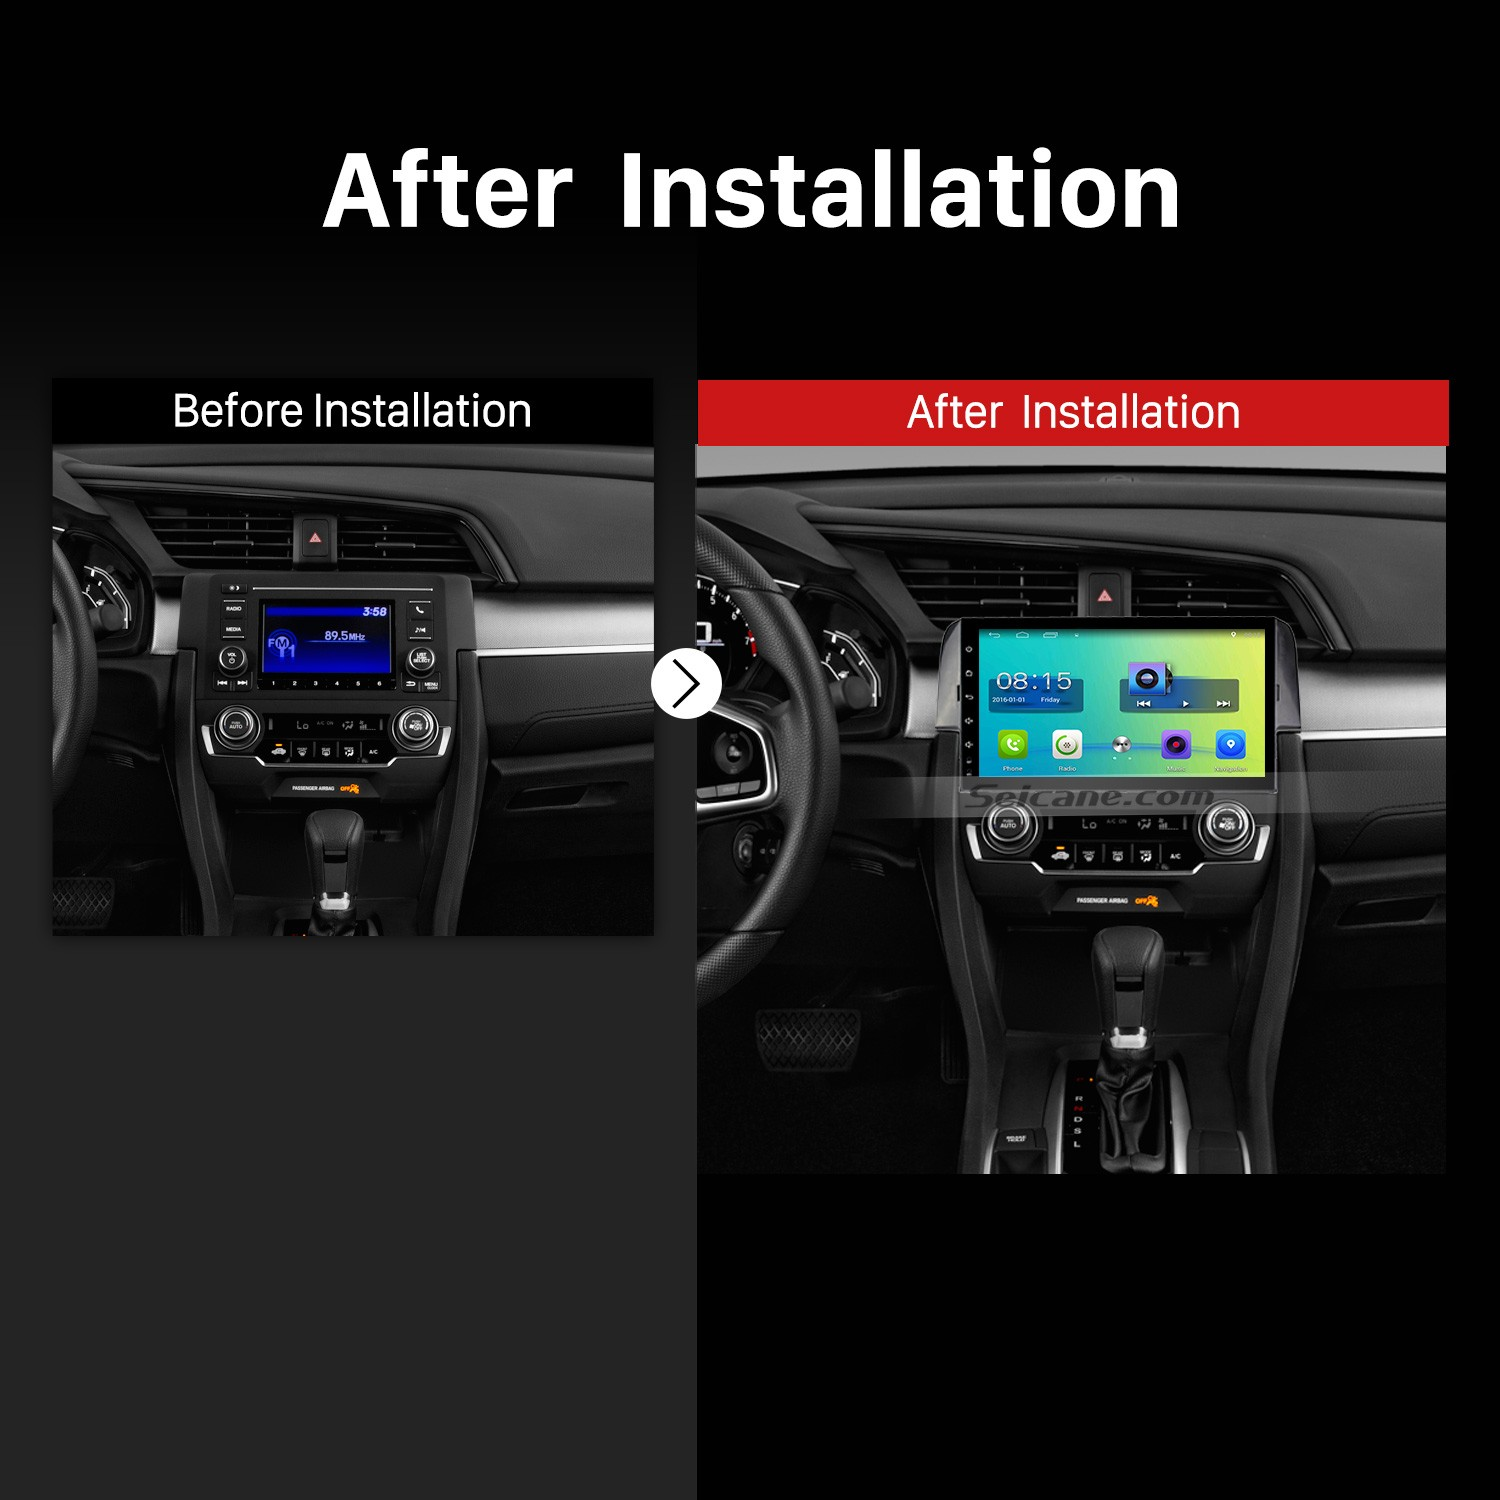 2016 HONDA CIVIC Car Radio after installation